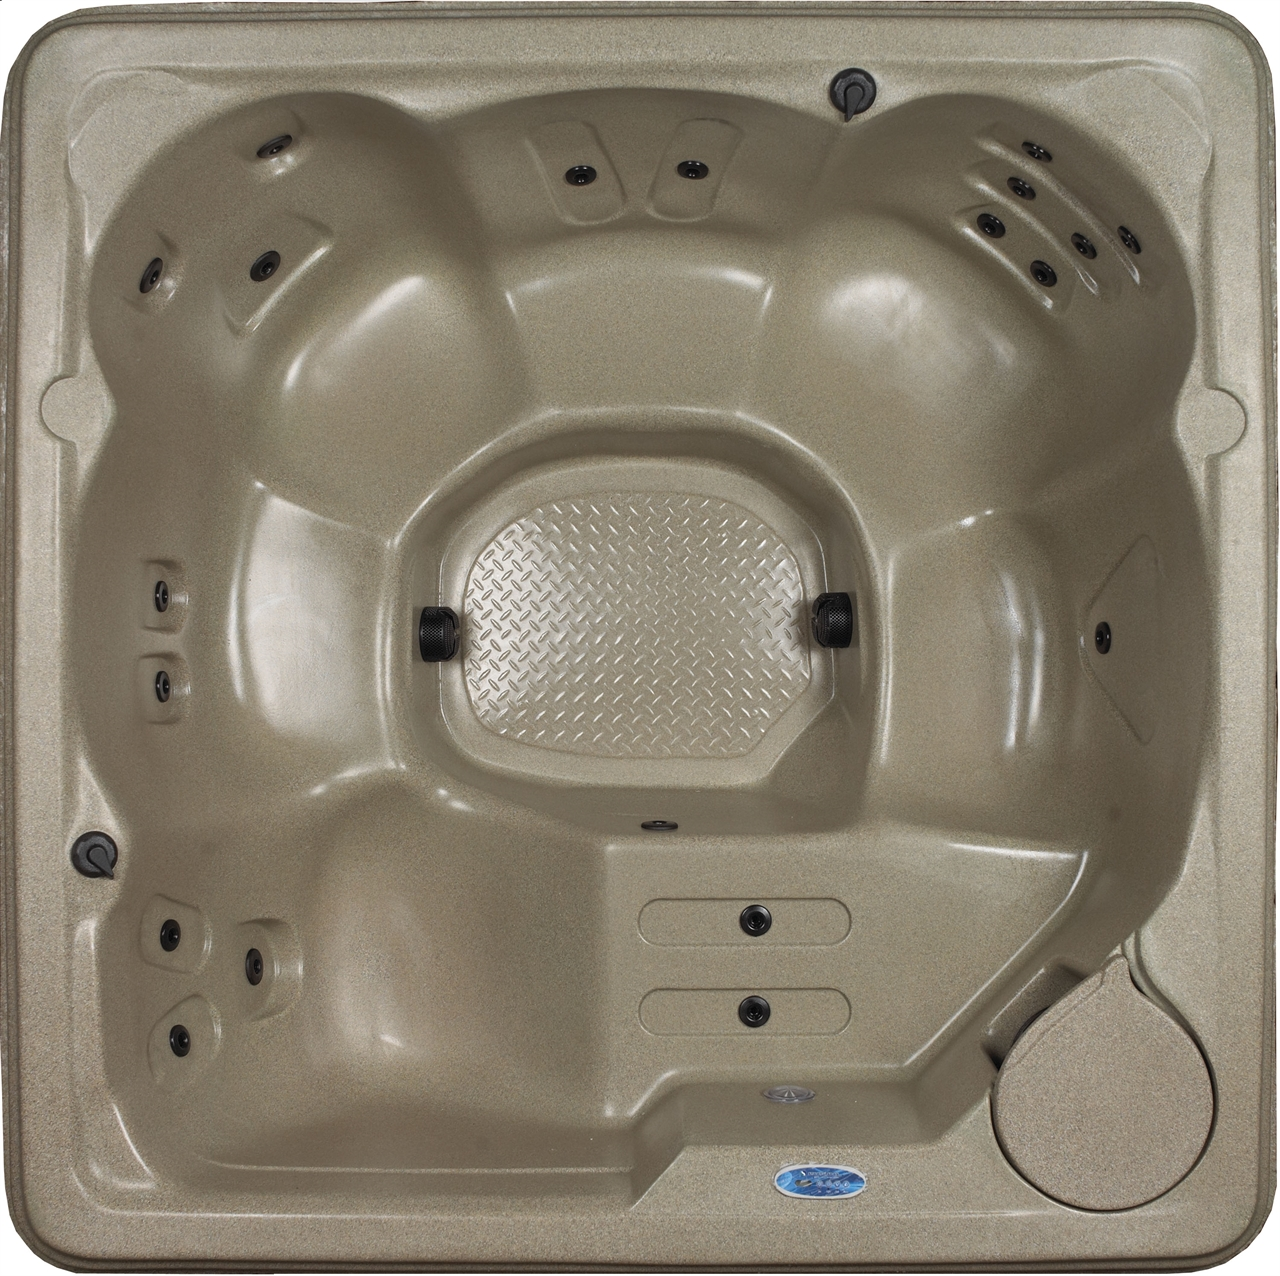 0004170-durasport-g-2l-hot-tub-5-6-seats.jpg